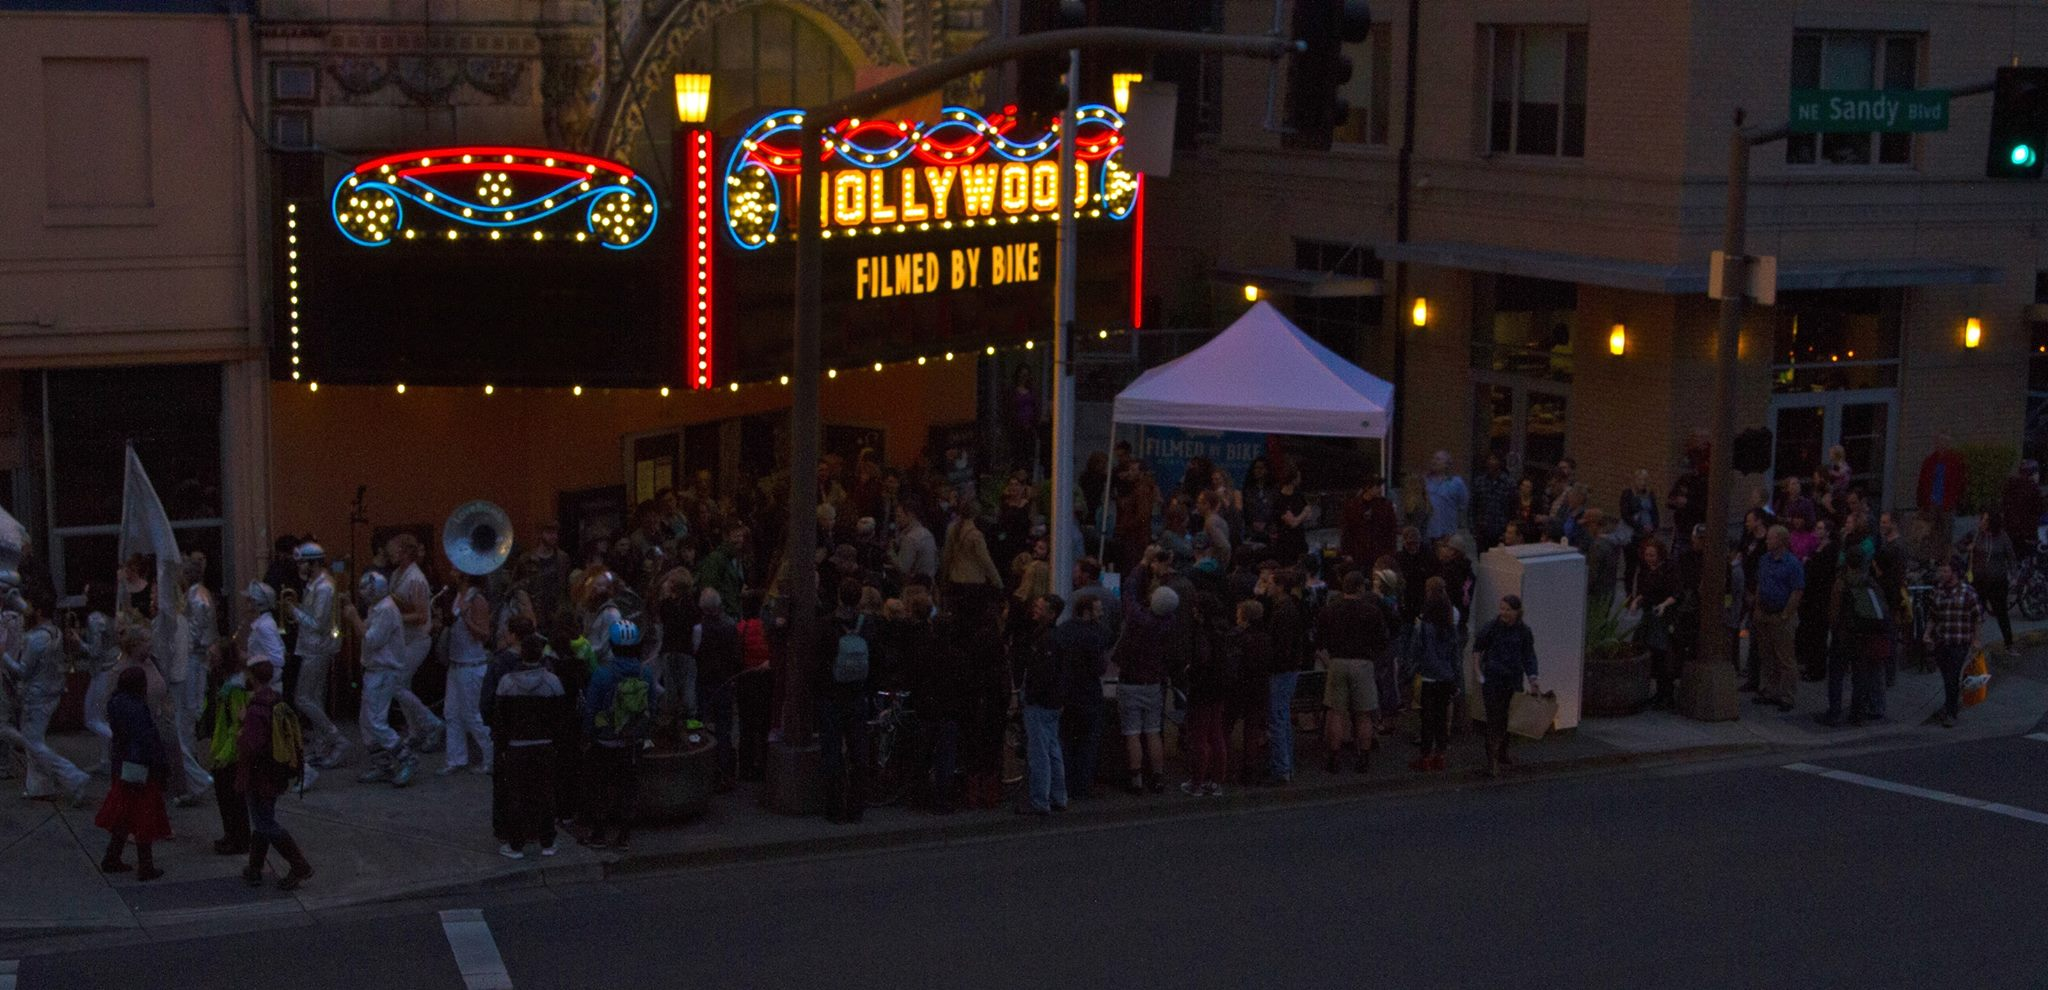 Filmed By Bike crowd outside the Hollywood Theatre in 2015. (image courtesy of Filmed By Bike)